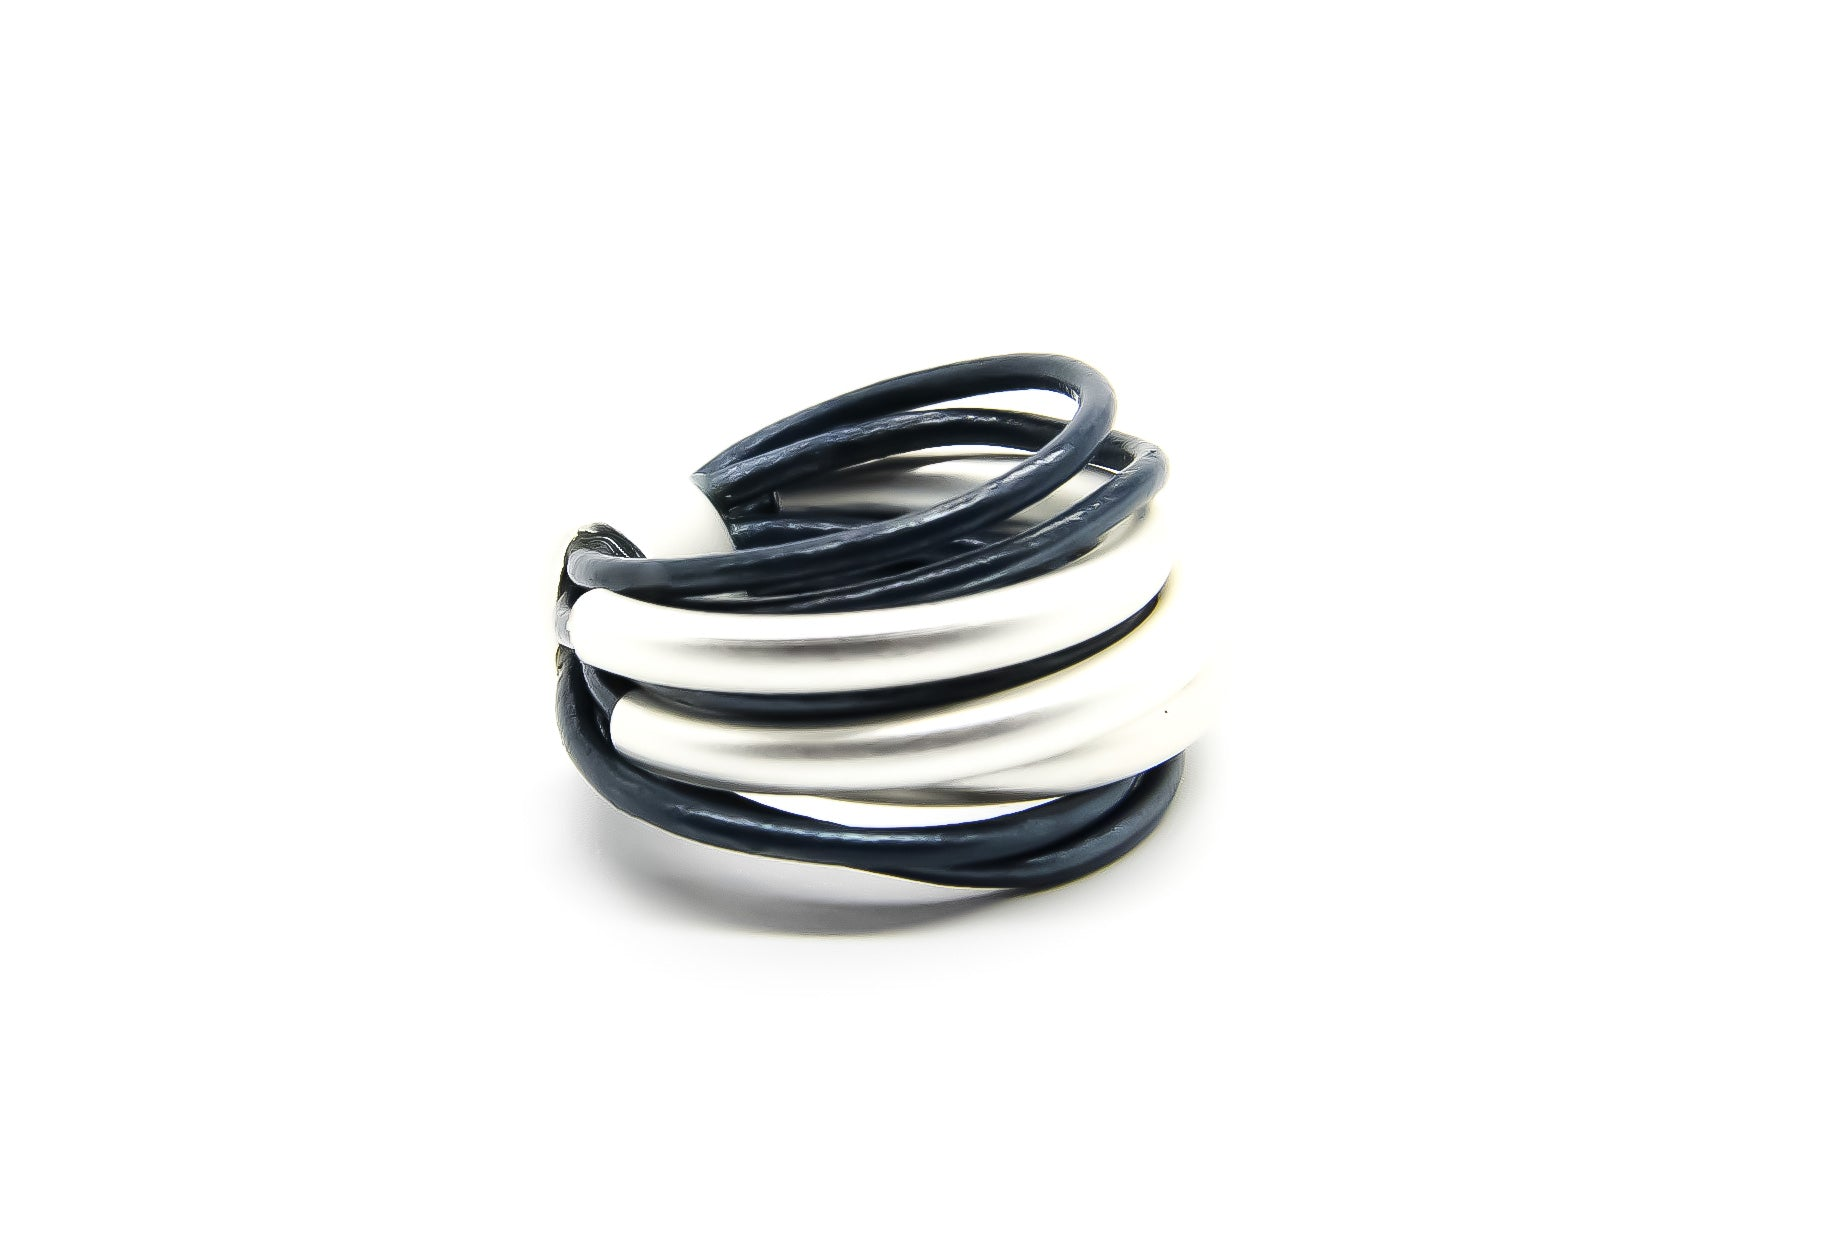 Blue and Silver Multi-strand Ring | Contemporary Ring Design | Ultra-Modern Jewellery | Ben's Beach